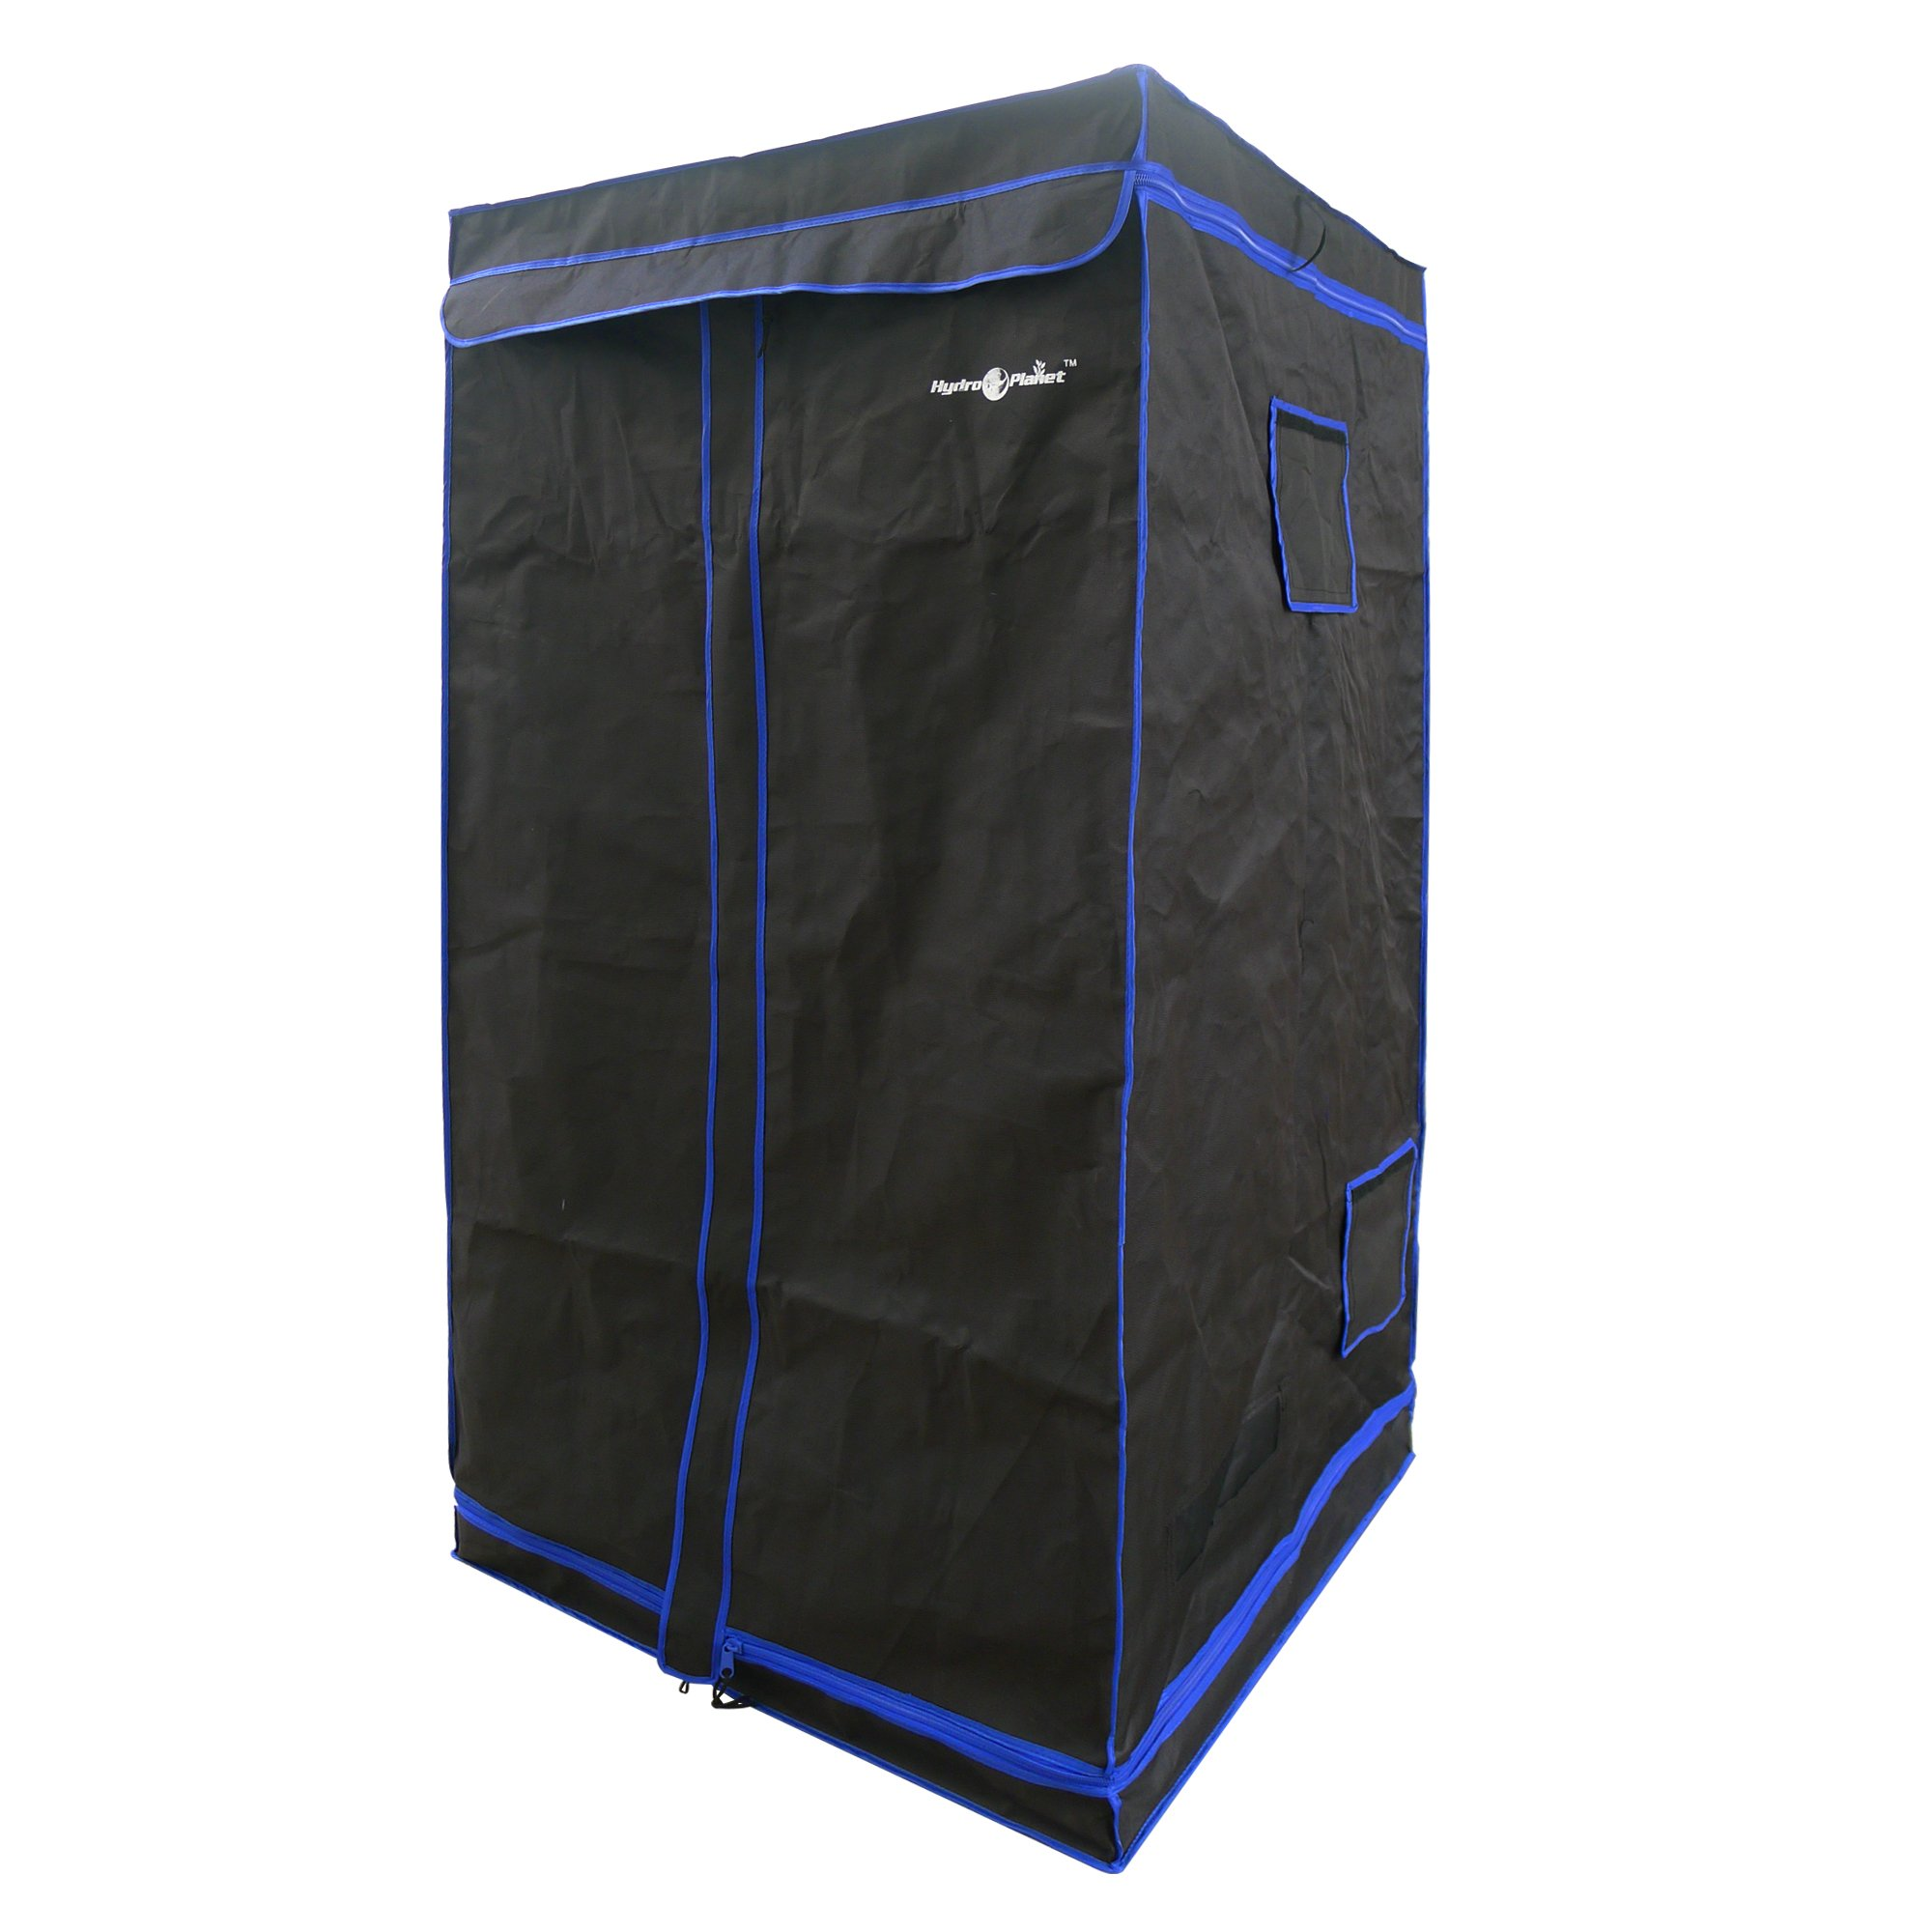 Hydroplanet 36x36x72 Mylar Hydroponic 600D 3'x3' Extra-Thick Canvas Grow Tent for Indoor Plant Growing (36x36x72) by Hydroplanet (Image #2)